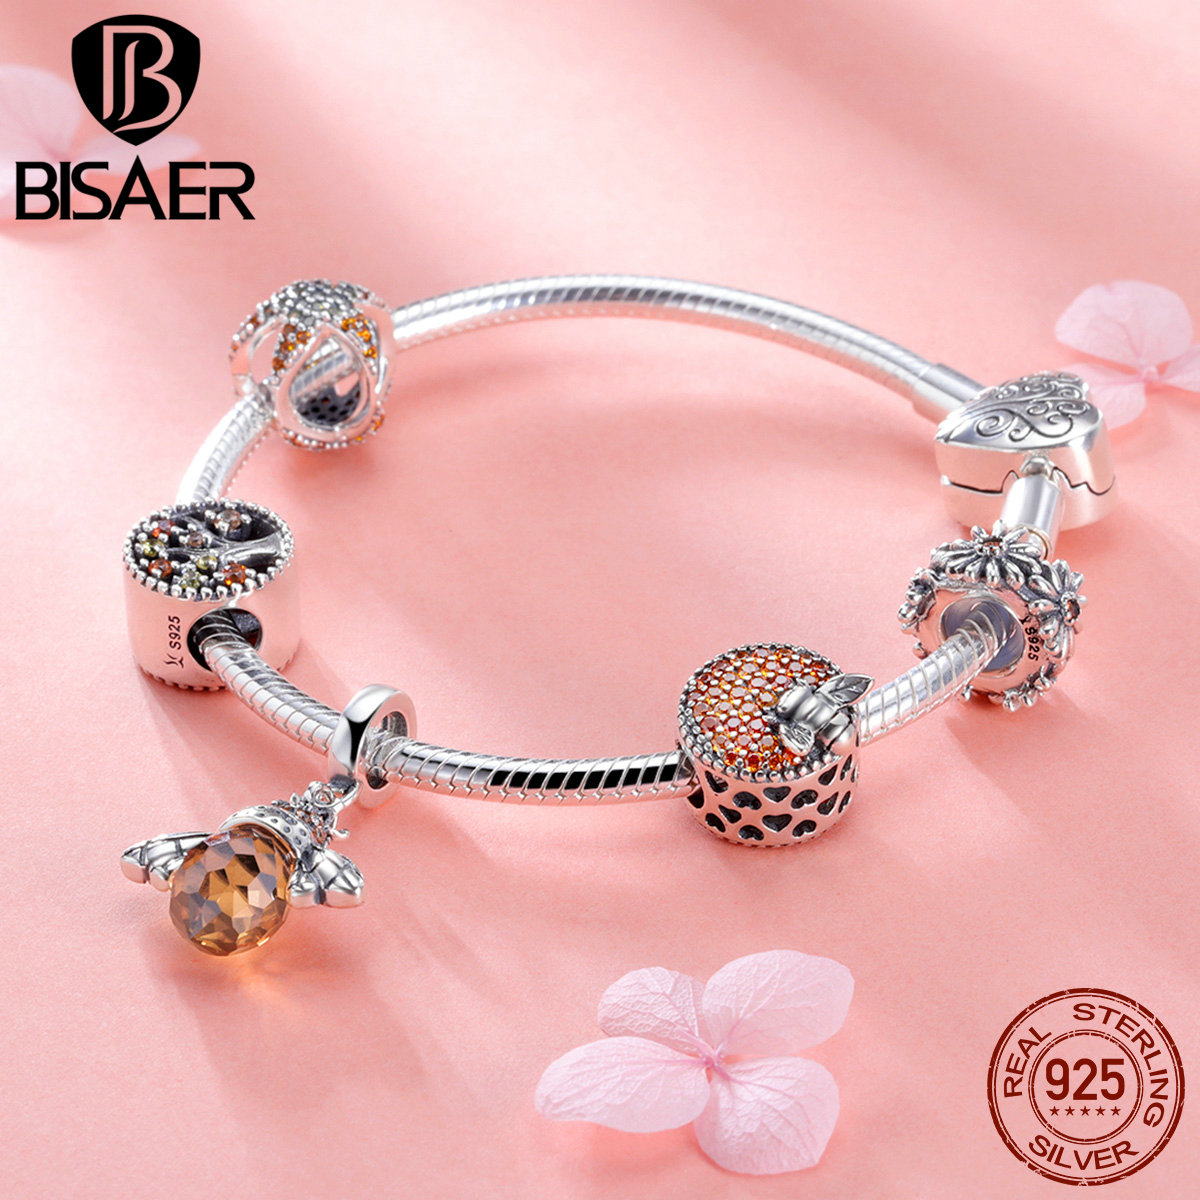 BISAER 925 Sterling Silver Bee Collection Insects CZ PAVE Bee Pendant Charm Bracelet for Women Original Brand Bangle GXB805 bisaer 7pcs 925 sterling silver heart key and locket heart pendant brand charm bracelet for women wedding silver bangle gxb811